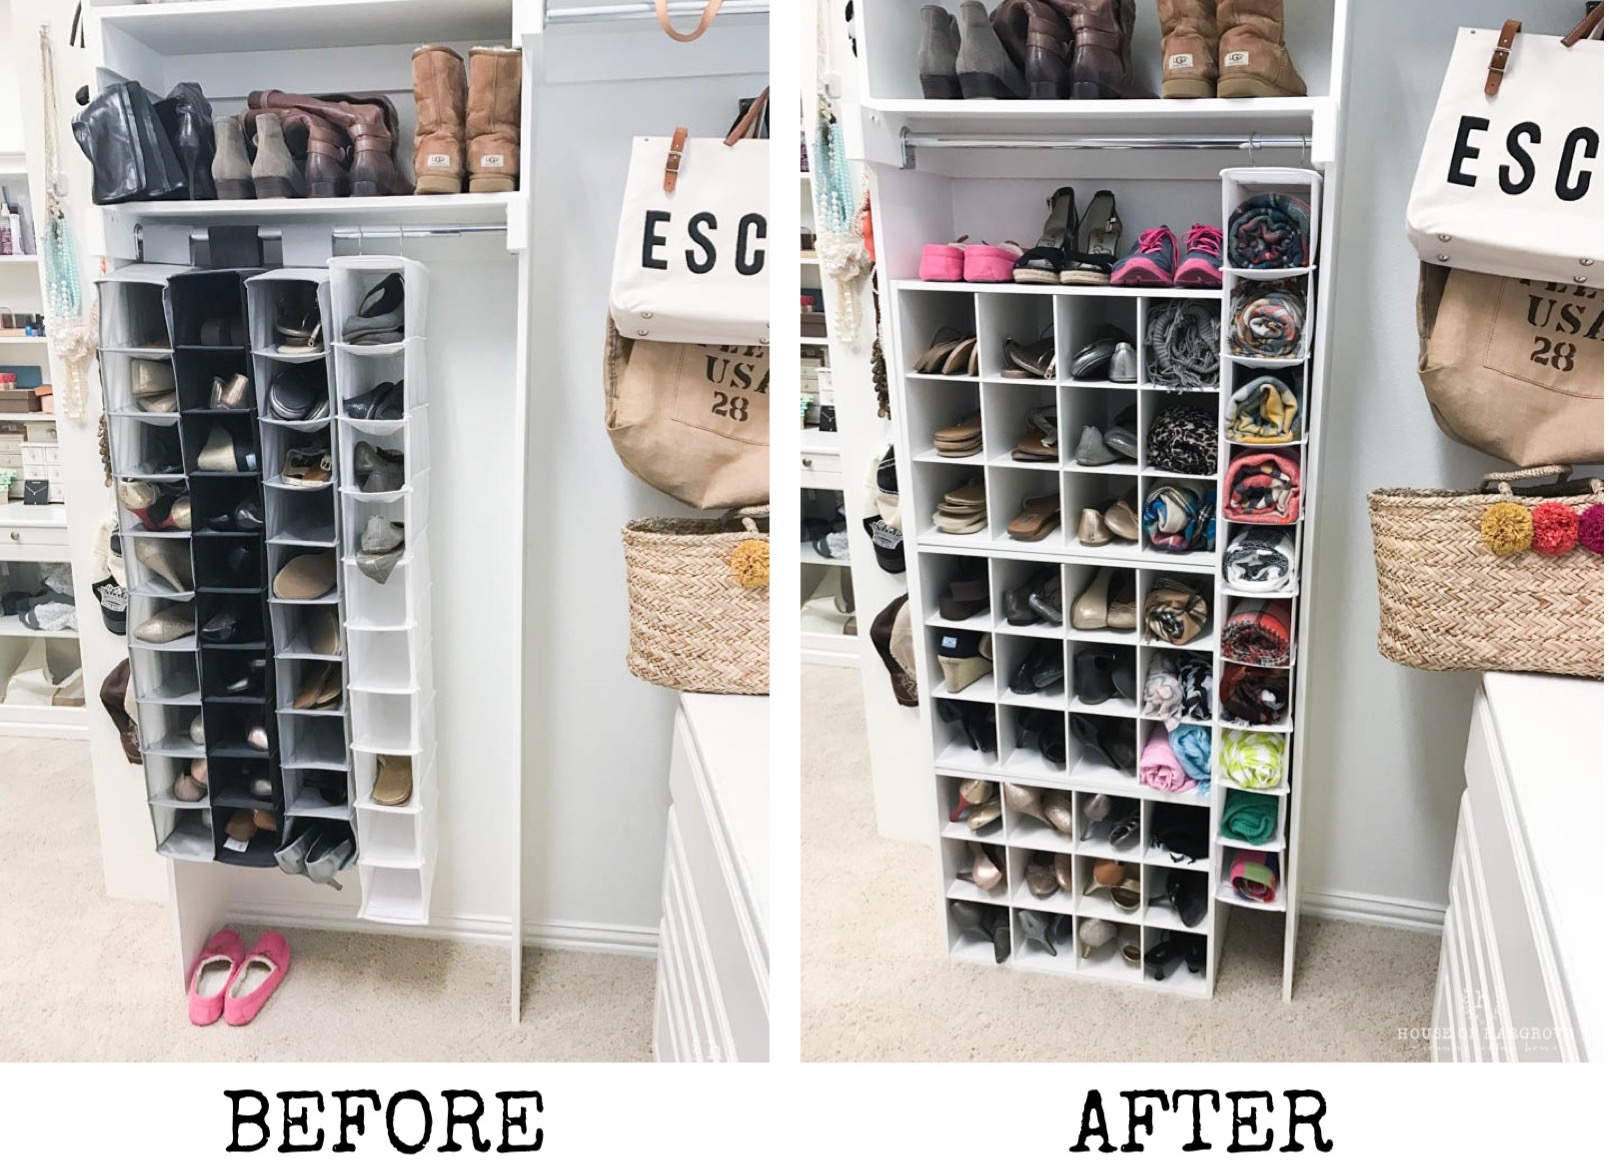 My Shoes All Have A E And This Winter I Am Going To Love Being Able See Scarves They Used Be Shoved In Drawer